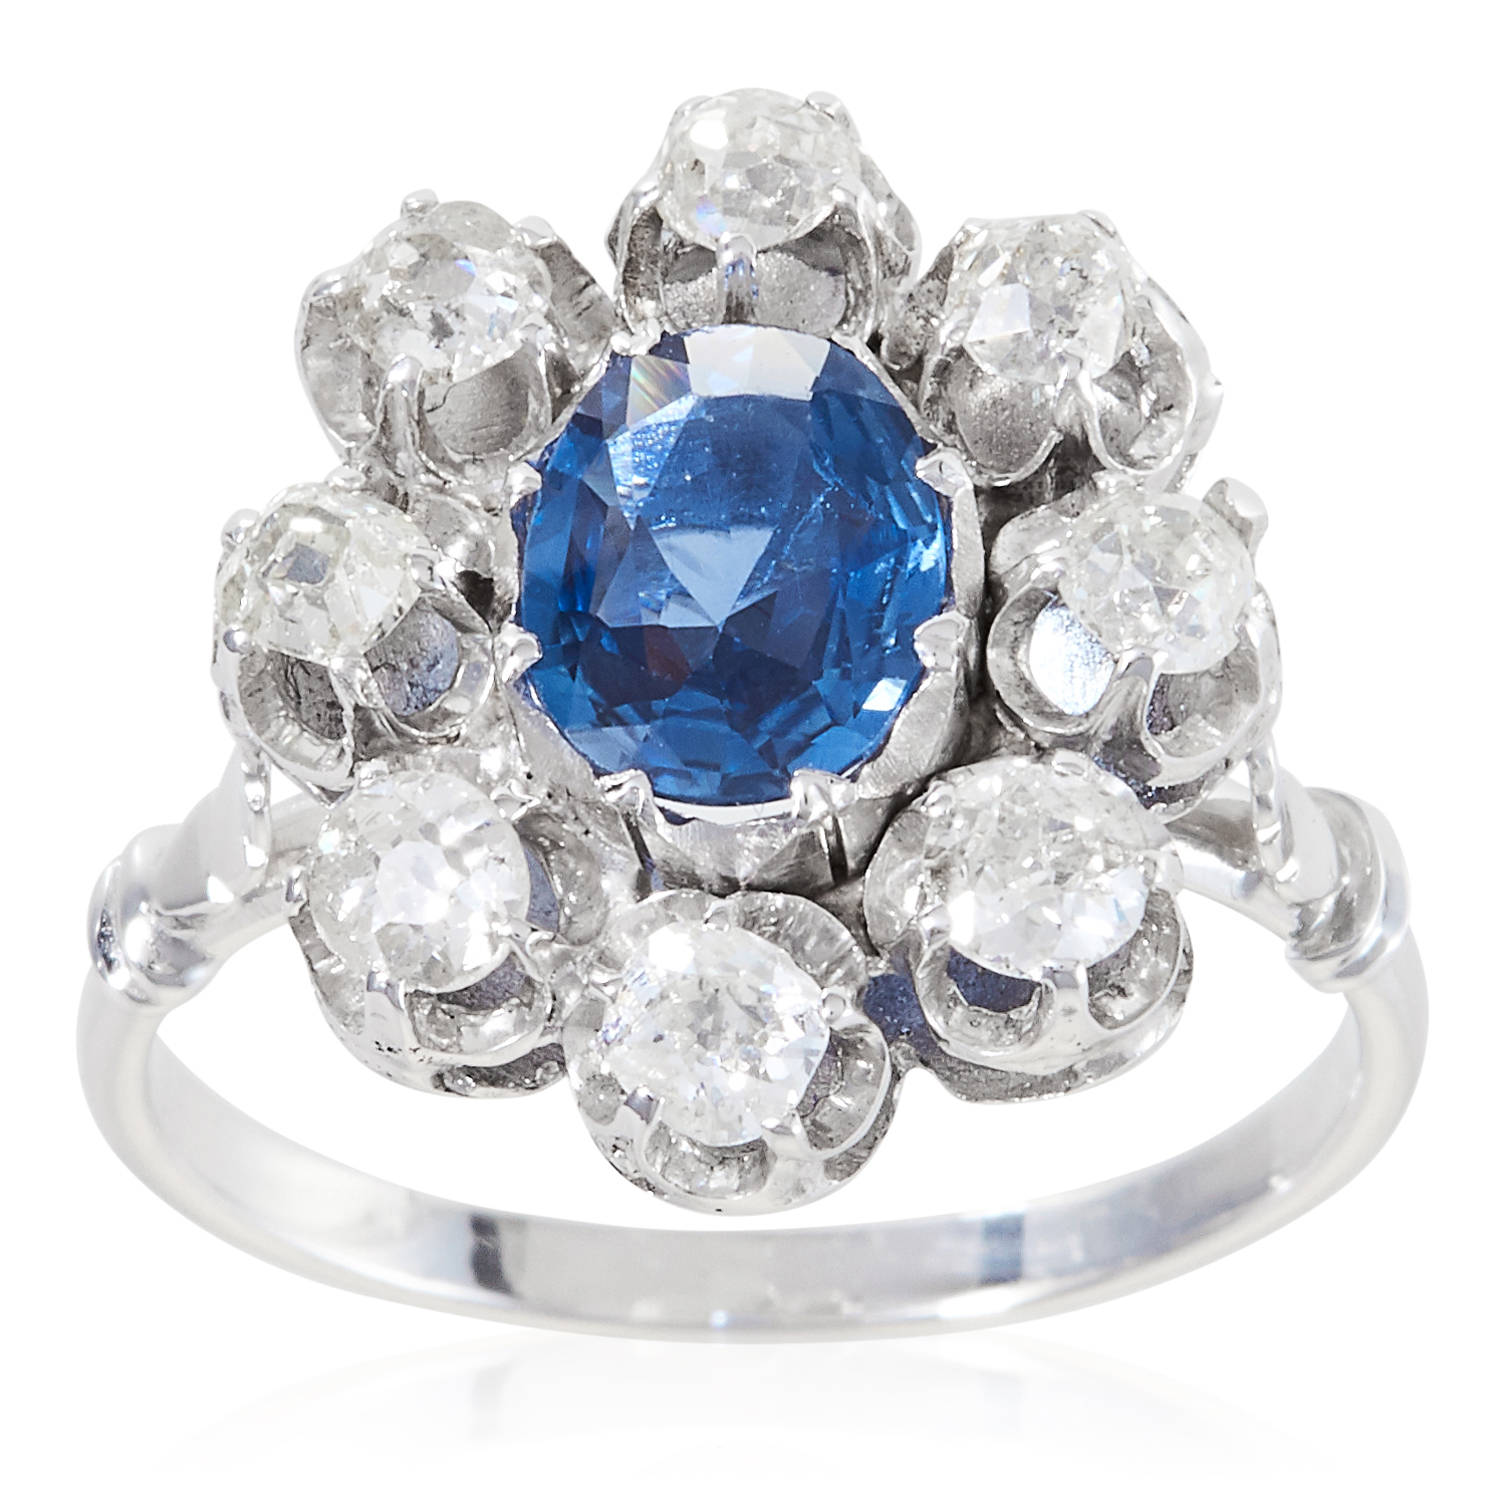 A SAPPHIRE AND DIAMOND CLUSTER RING in platinum or white gold, the oval cut sapphire encircled by